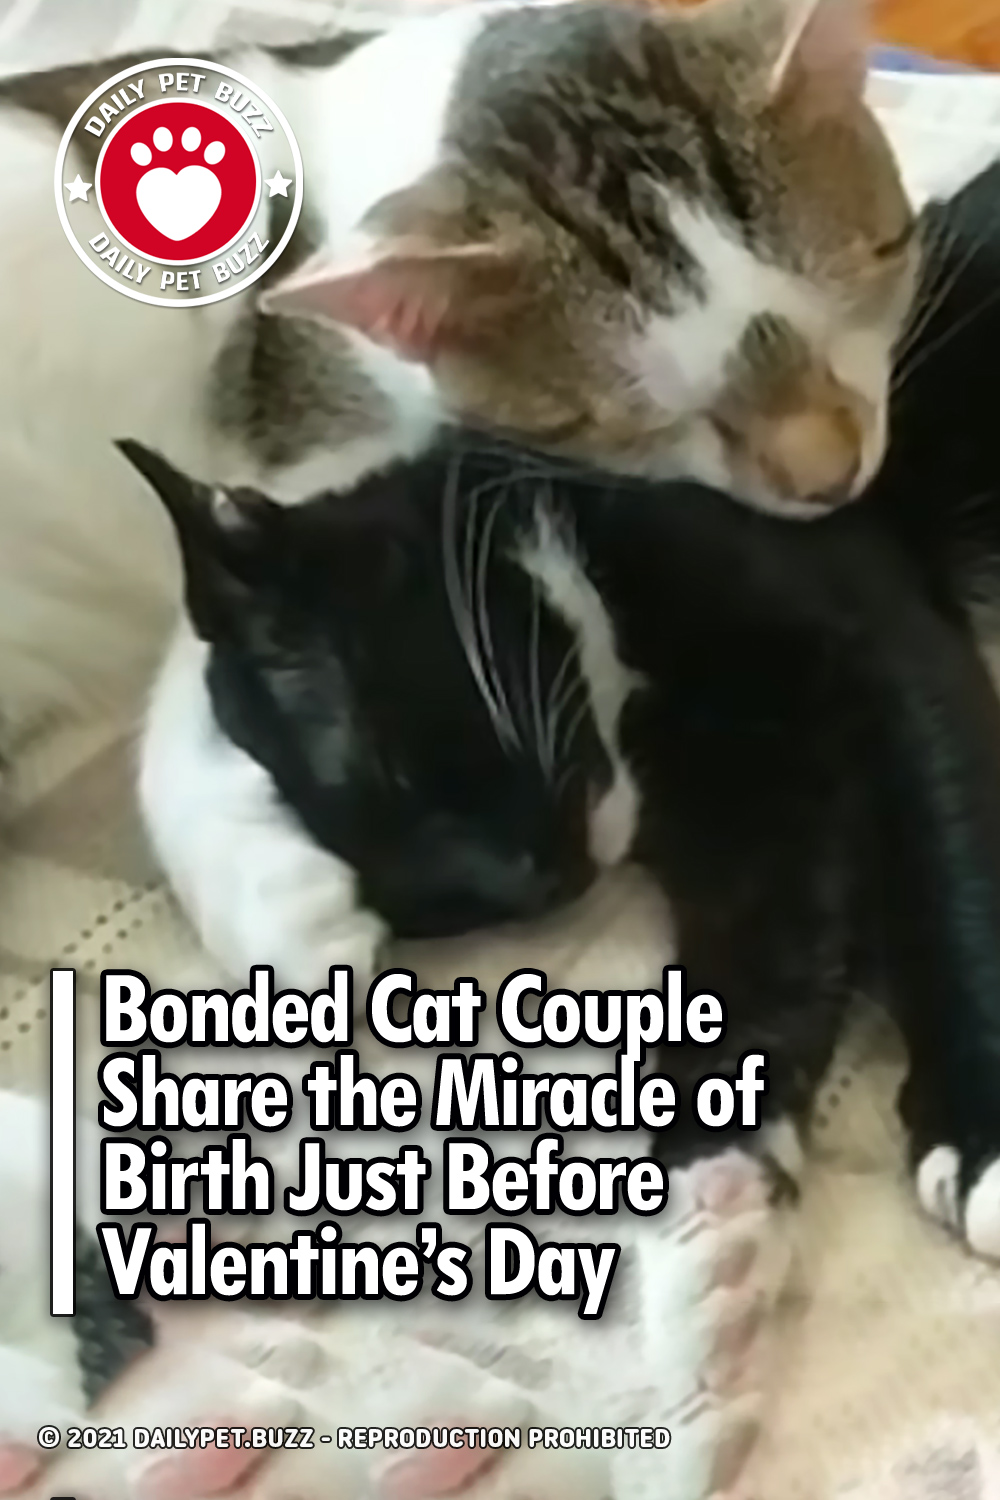 Bonded Cat Couple Share the Miracle of Birth Just Before Valentine's Day